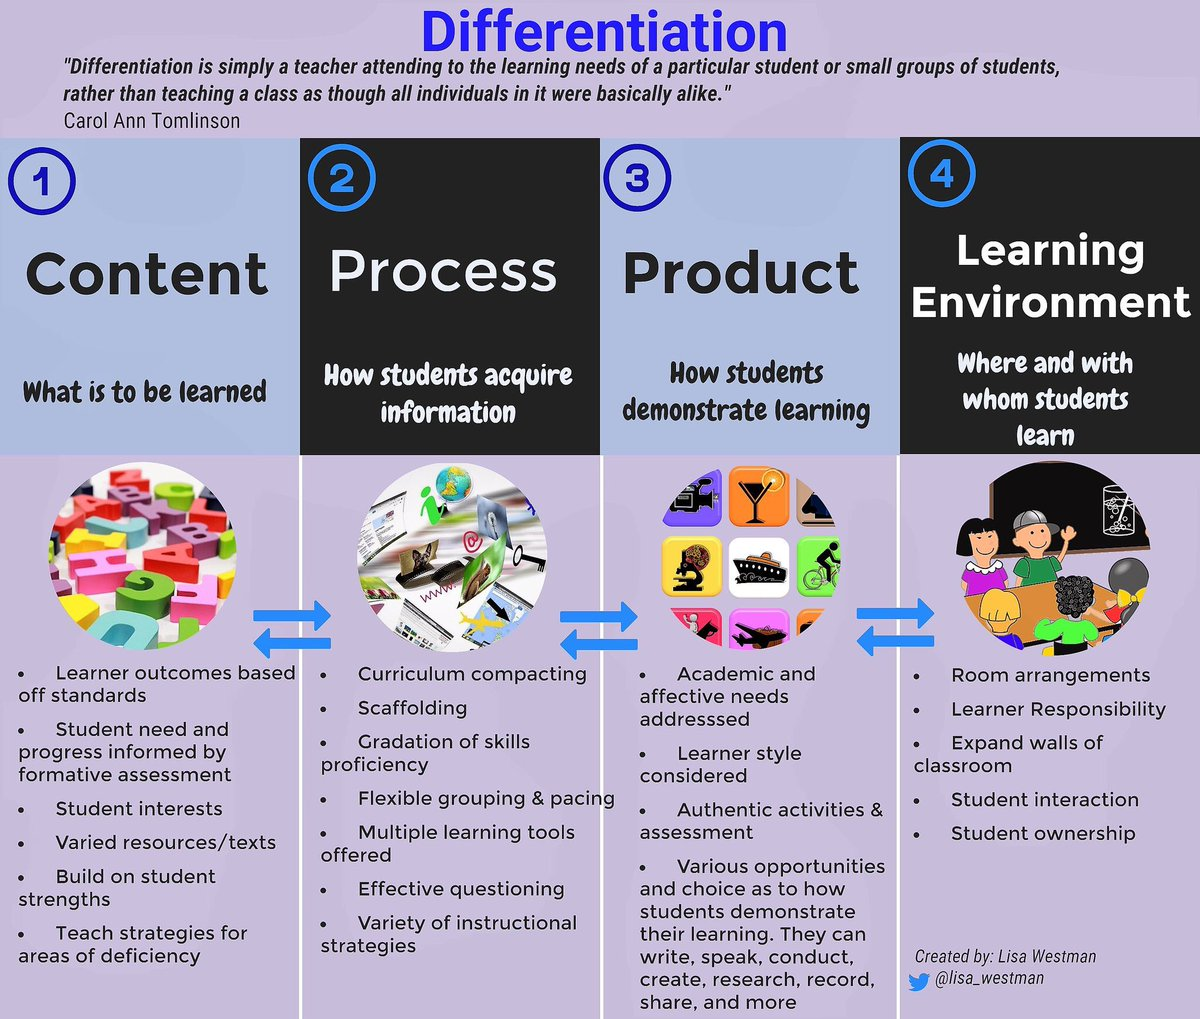 4 Components of #Differentiation by @lisa_westman #edchat #education #teaching #teachertips